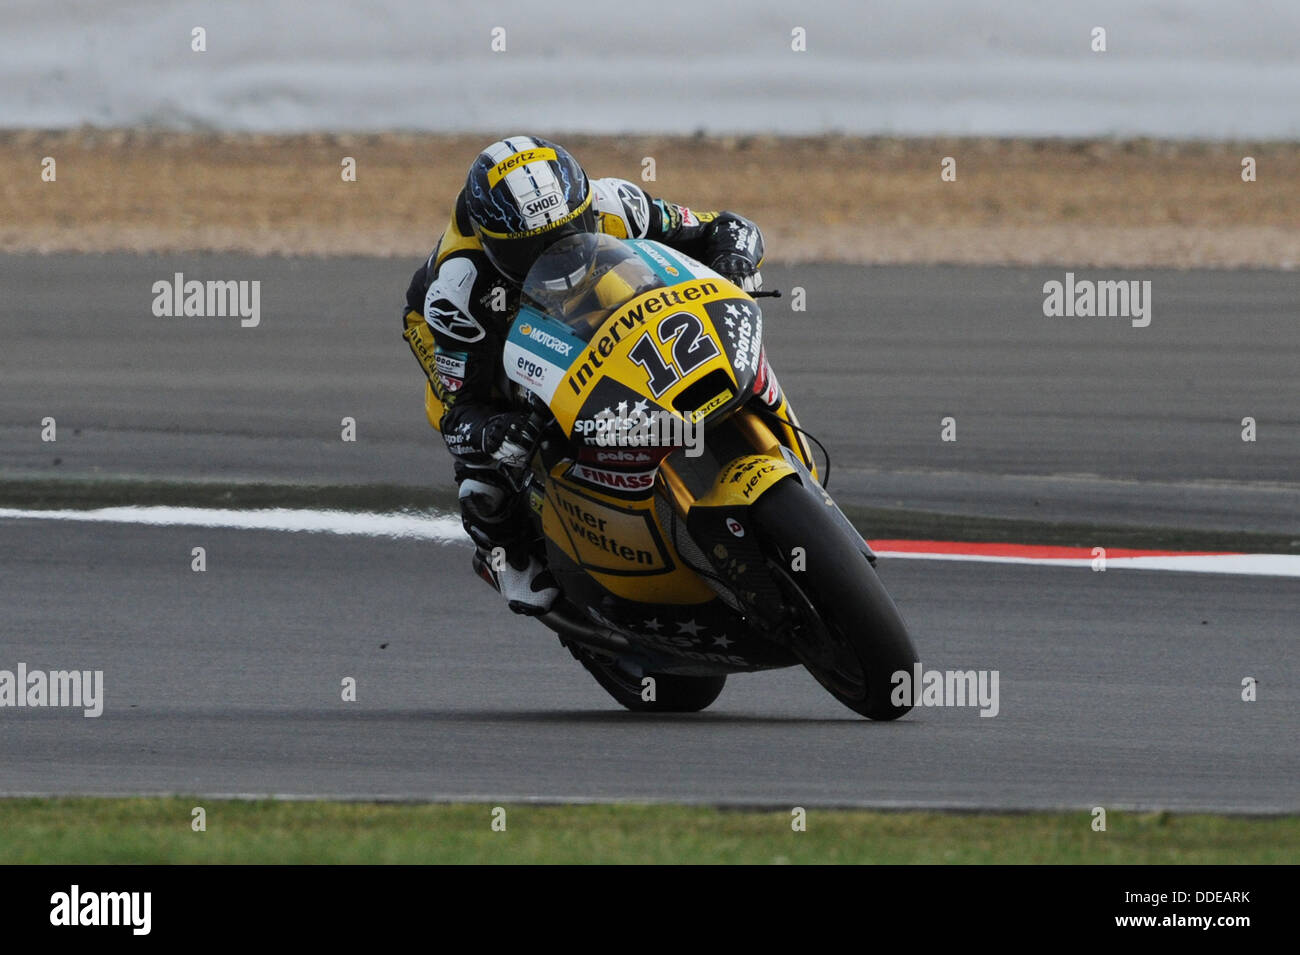 Silverstone, United Kingdom. 01st September 2013. Thomas Luthi (Interwetten Paddock Moto2) during the race at Silverstone - Stock Image